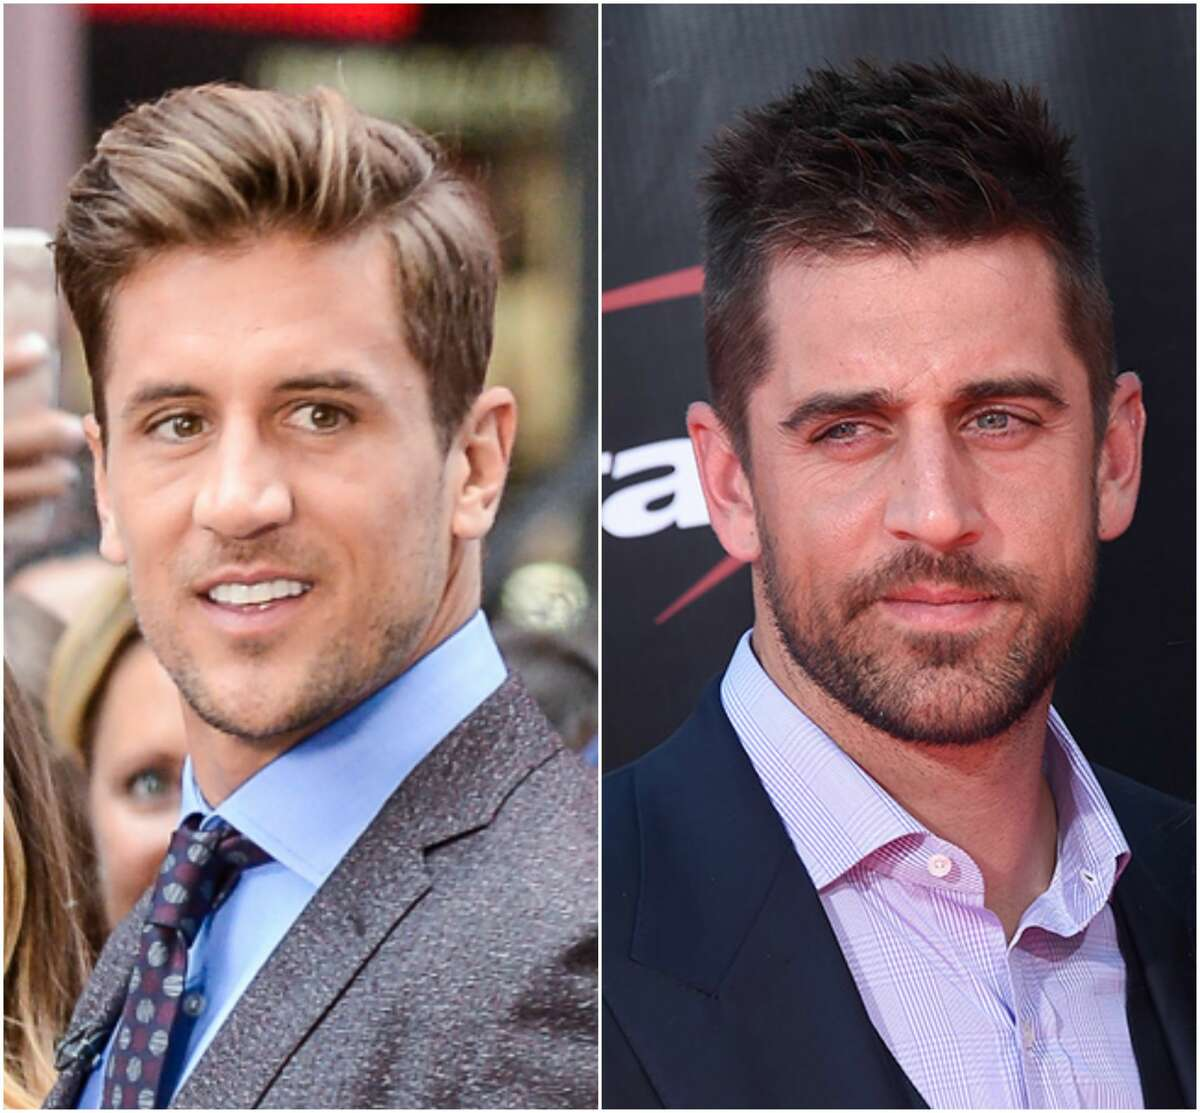 """The """"winner"""" of this week's """"The Bachelorette"""" finale was Jordan Rodgers (left), the younger brother of NFL star Aaron Rodgers.While his brother stars for the Packers, Jordan bounced around to three different practice squads and Canada. Click through the gallery to see other star athletes and their lesser-known athletic siblings."""